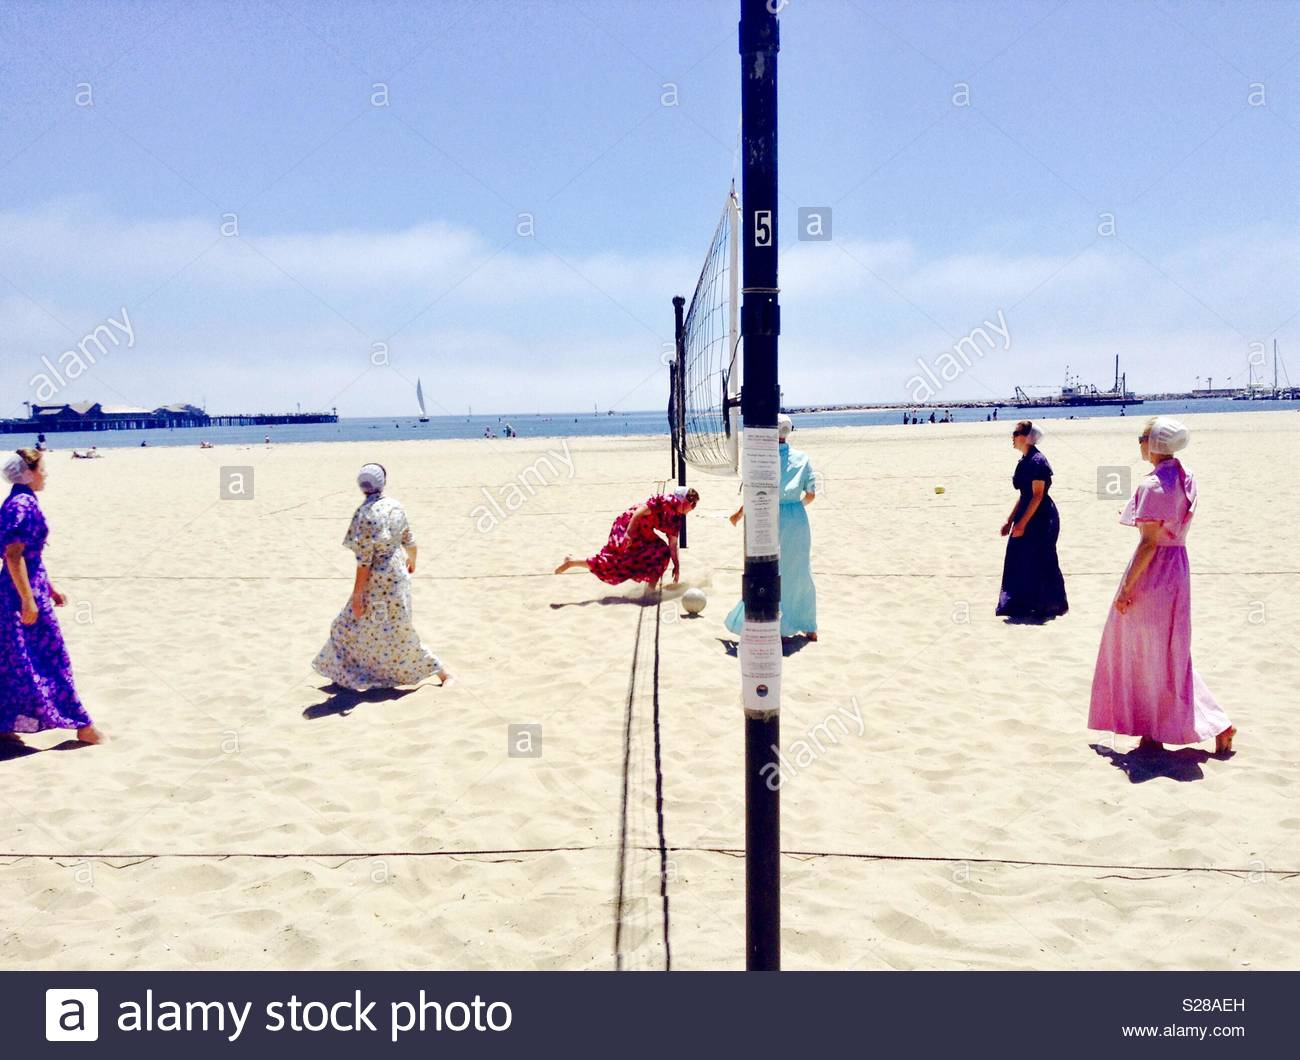 Women appearing as Mennonites, wearing bonnets and long dresses play